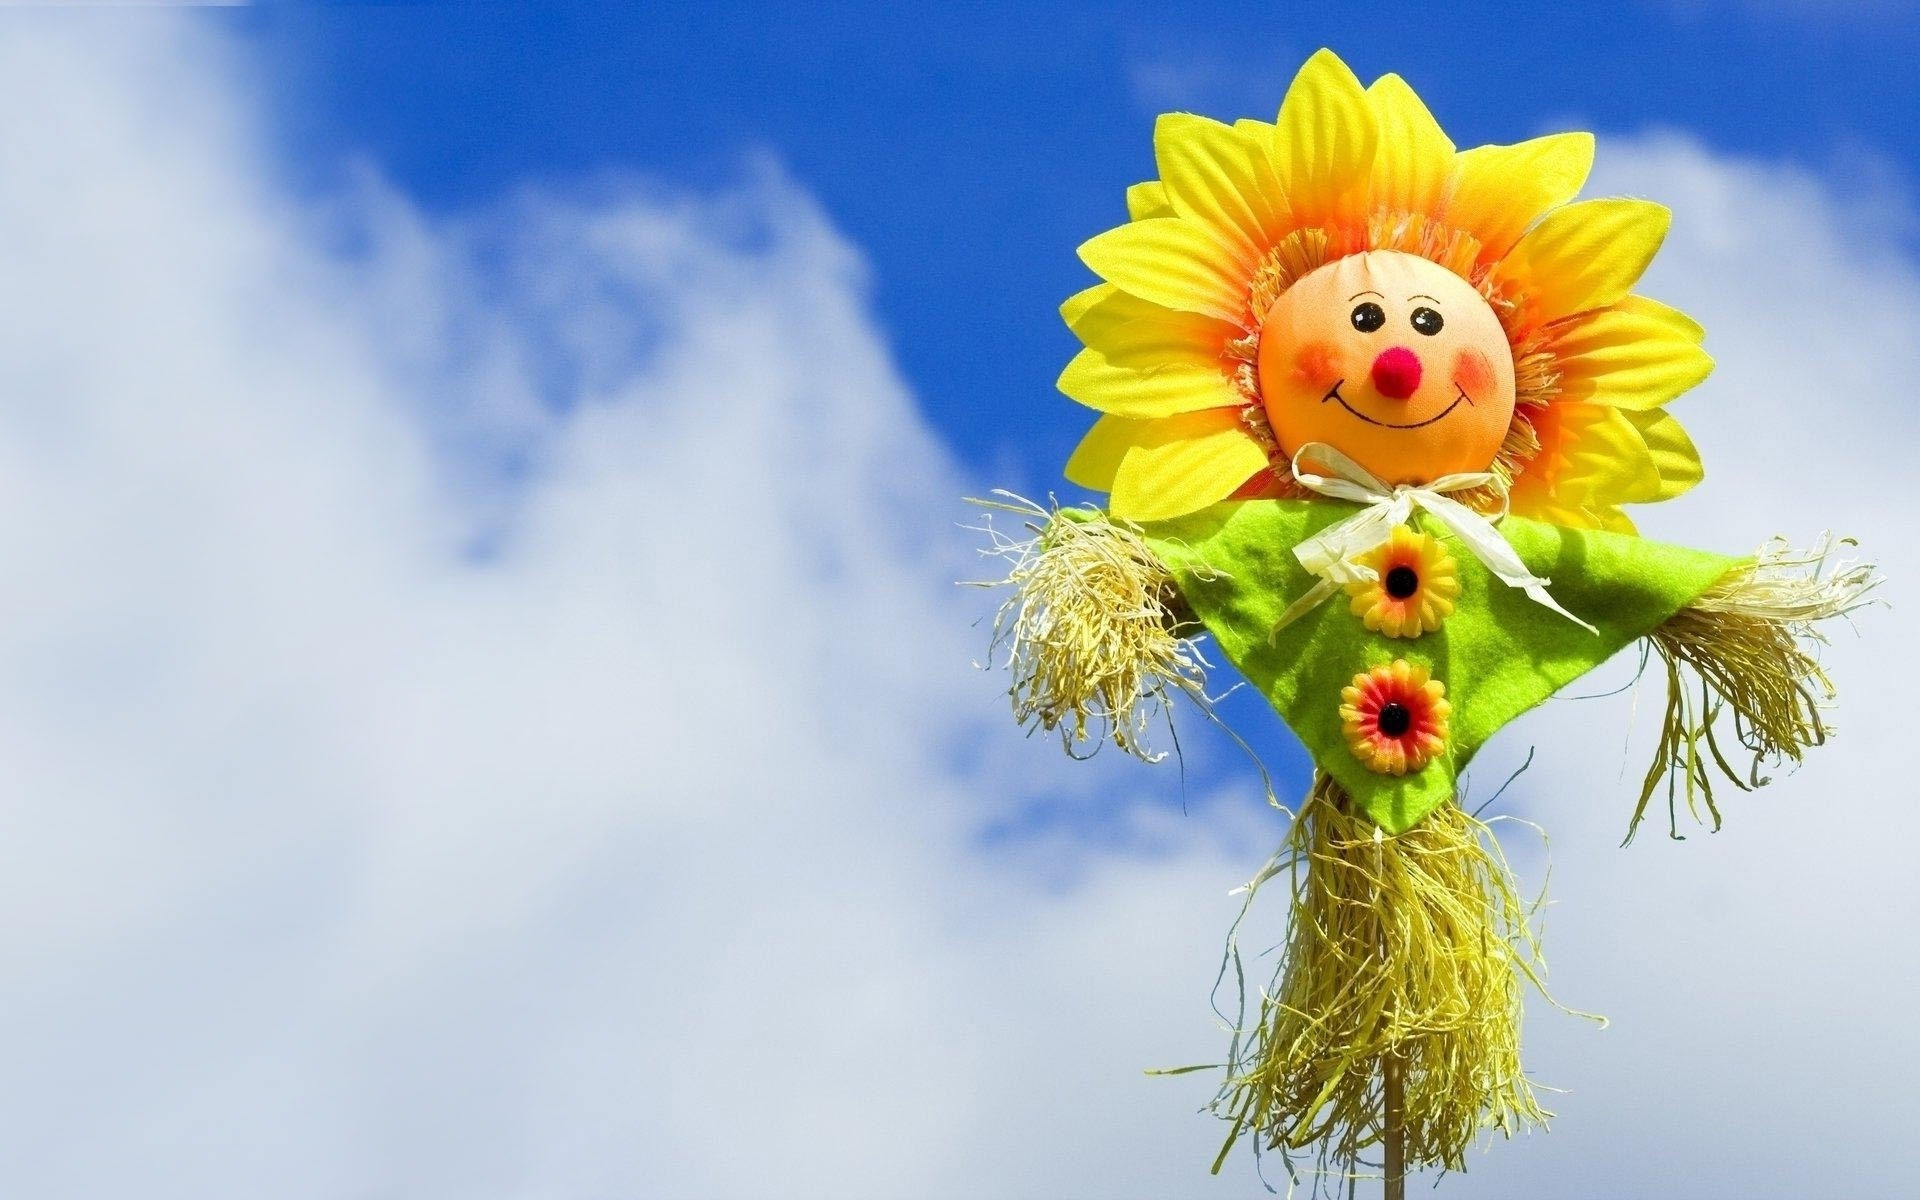 22480 download wallpaper Background, Sunflowers, Sky screensavers and pictures for free